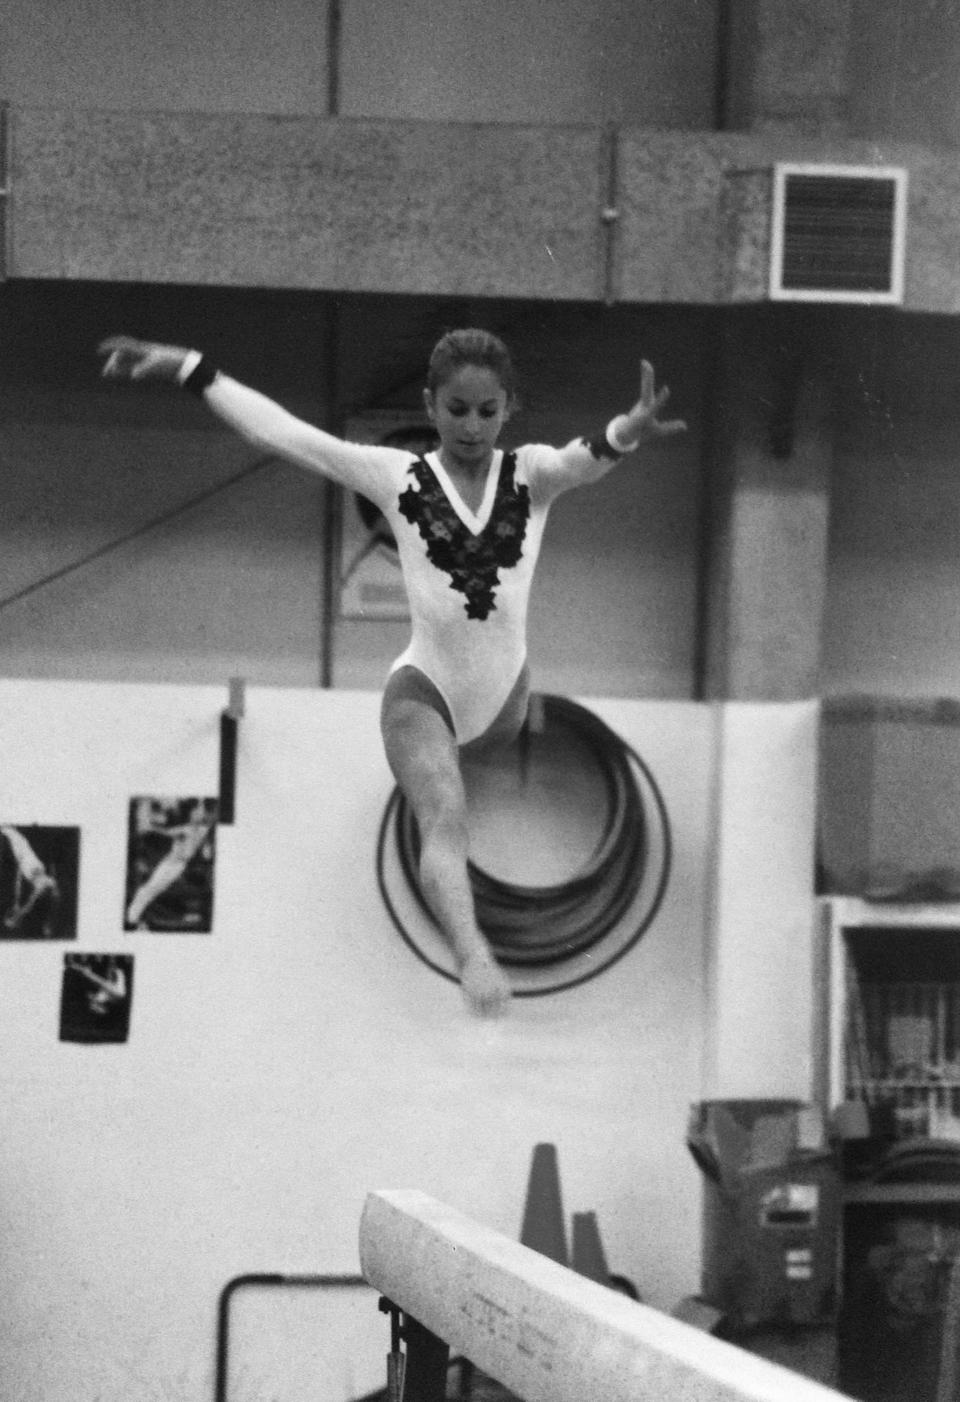 Claire Heafford pictured during her time as a gymnast